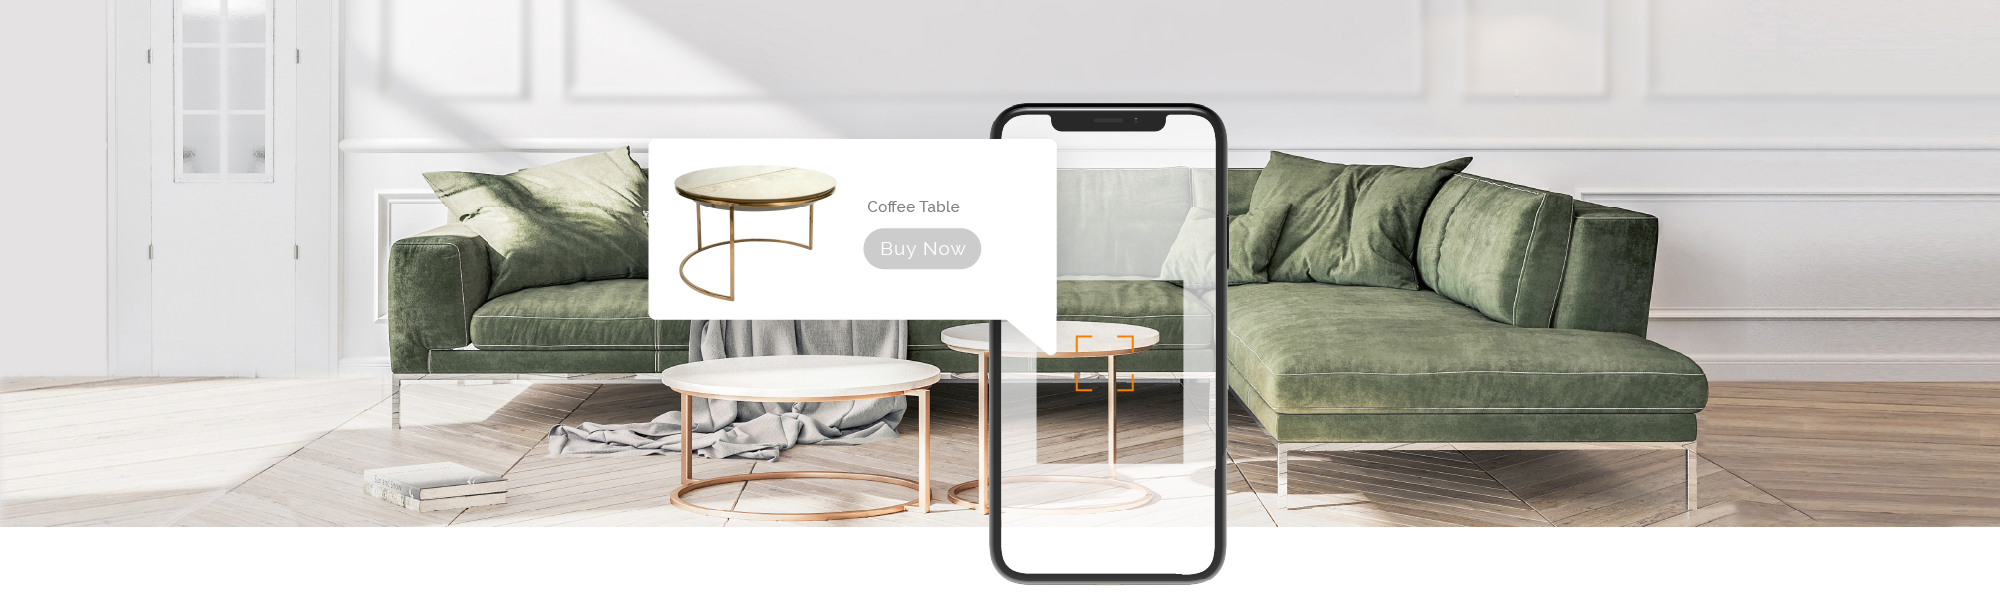 Image of a green modern sectional sofa and coffee table overlaid with a mobile phone screen displaying an ad for the coffee table